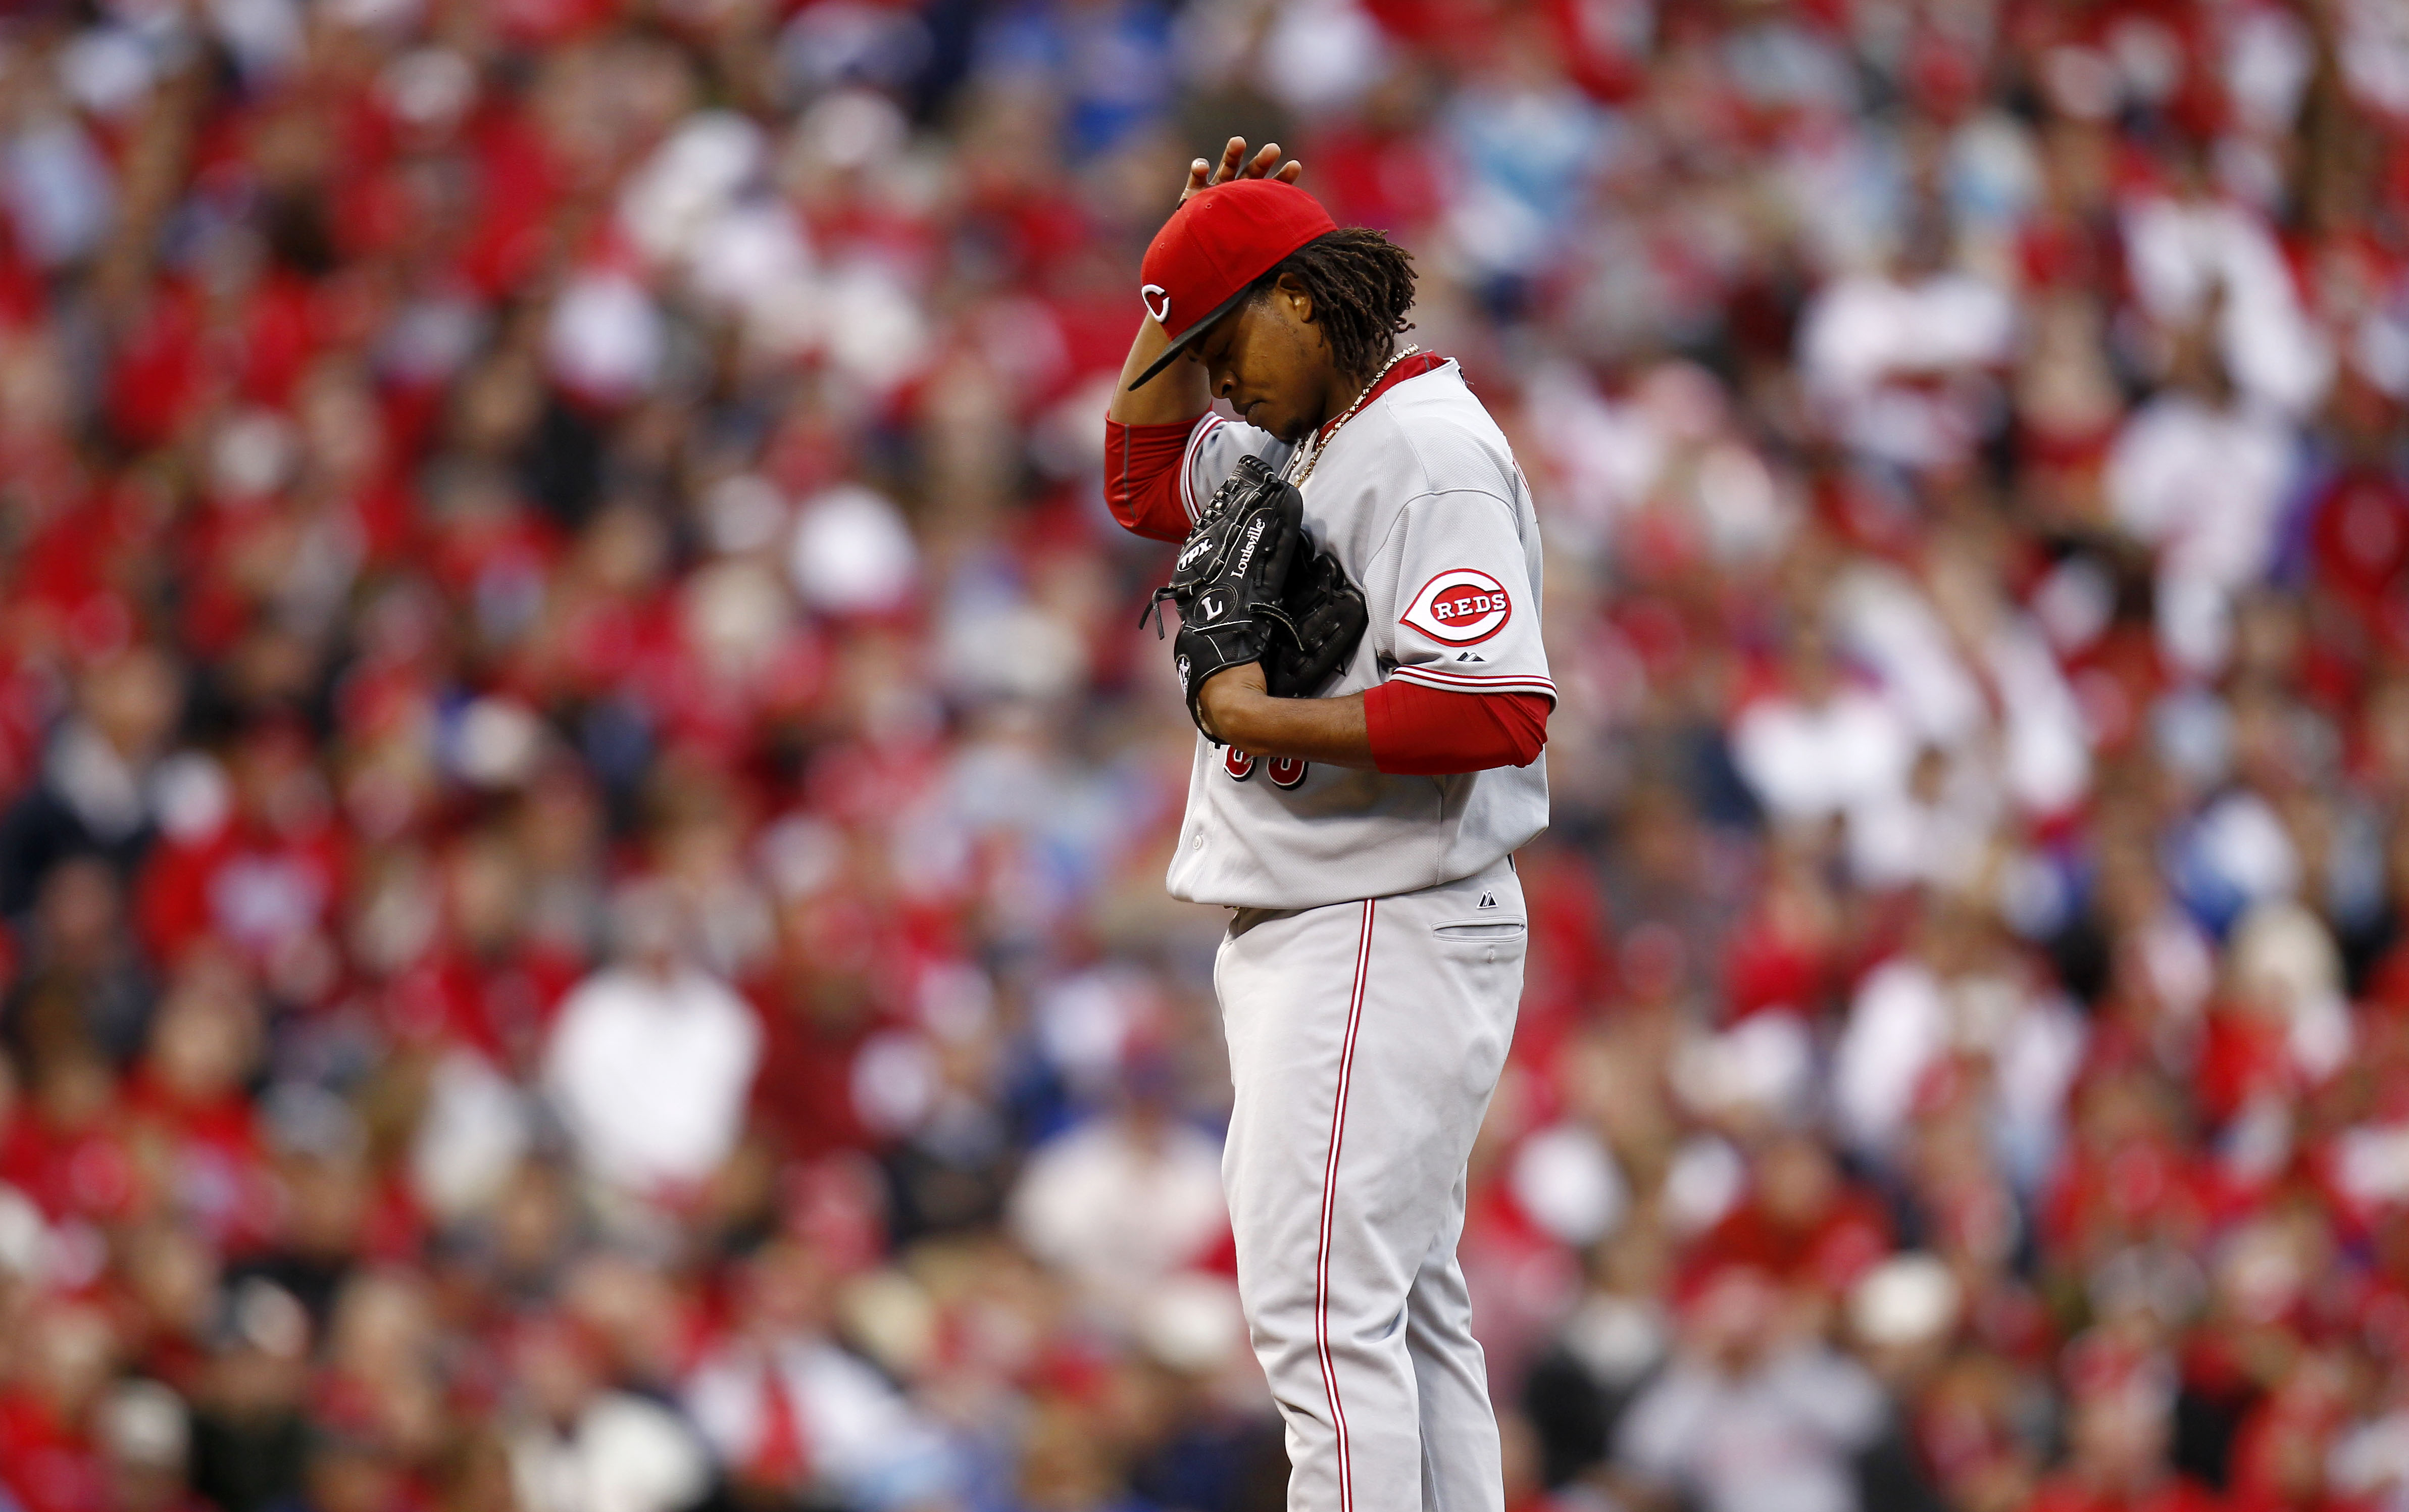 PHILADELPHIA - OCTOBER 06:  Edinson Volquez #36 of the Cincinnati Reds reacts in Game 1 of the NLDS against the Philadelphia Phillies at Citizens Bank Park on October 6, 2010 in Philadelphia, Pennsylvania.  (Photo by Jeff Zelevansky/Getty Images)